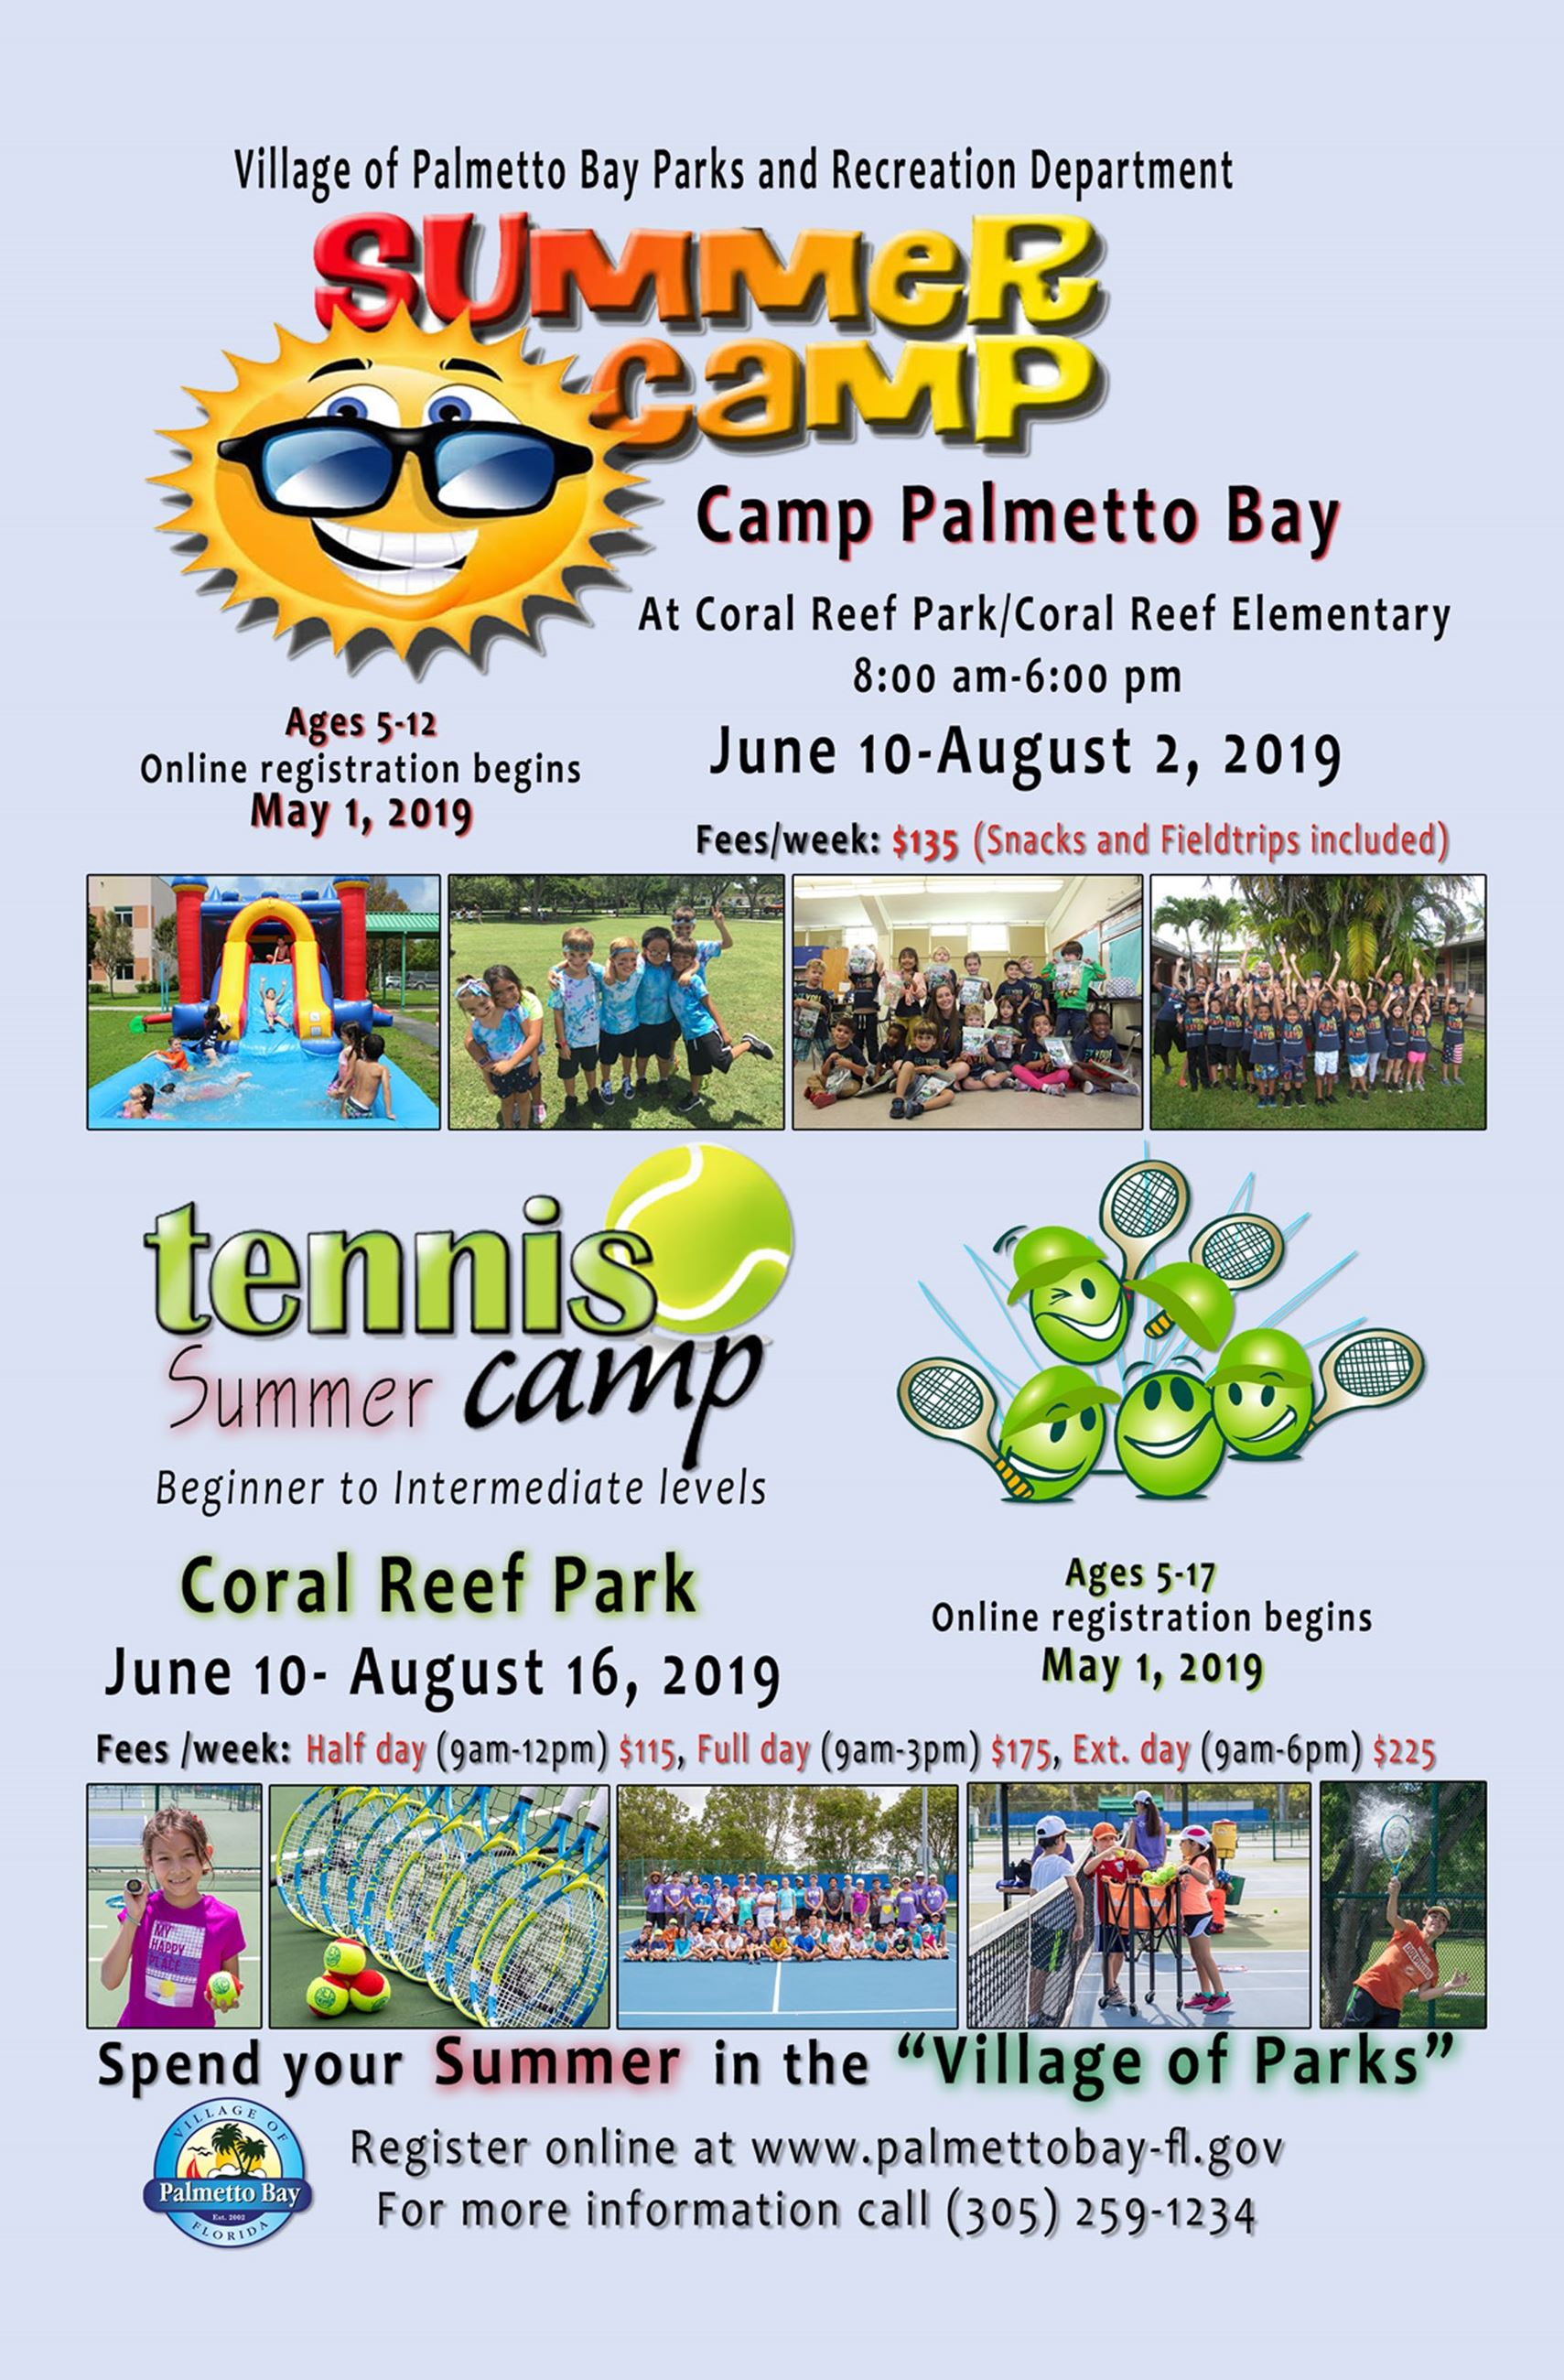 Summer Camp Palmetto Bay at Coral Reef Park/Coral Reef Elementary from June 10th - August 2nd from 8